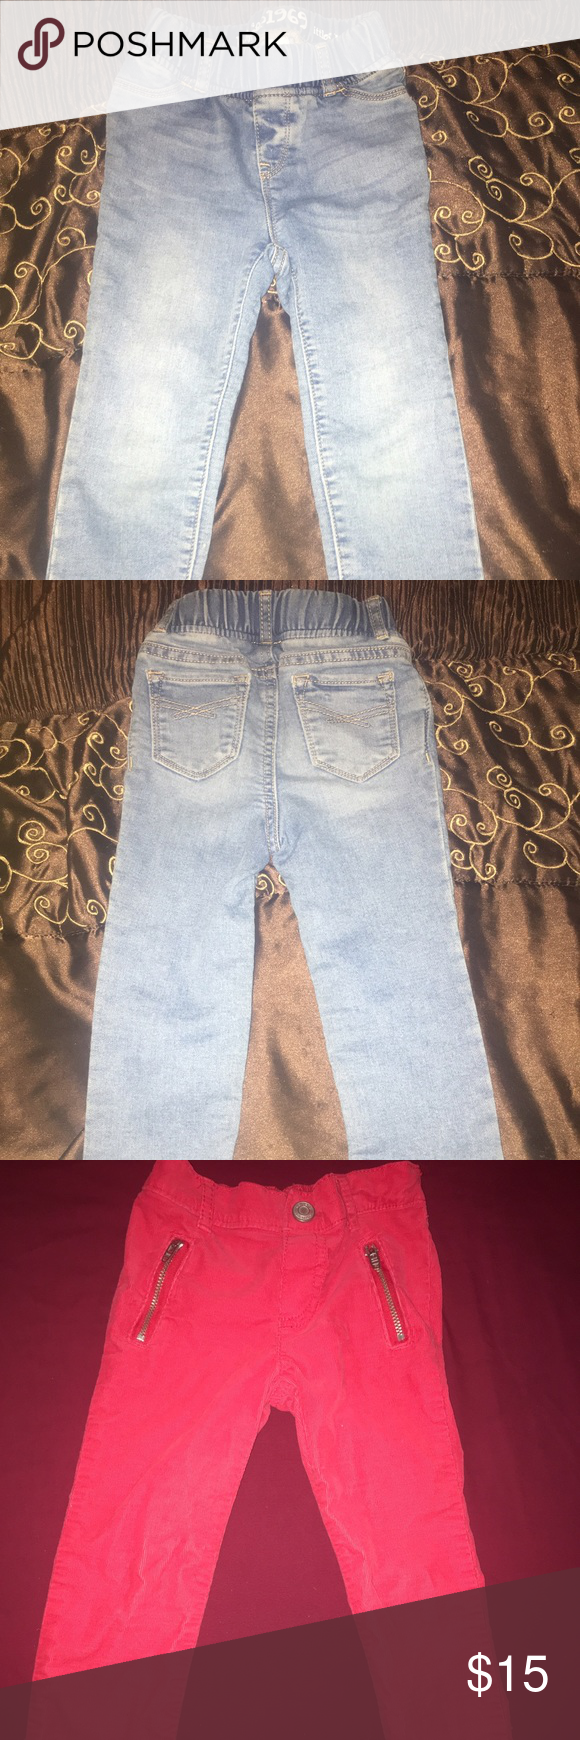 Girls toddler pants bundle ❤️💙 Like new jeans for girls. Very light wear. Red corduroy pants with silver details and light denim blue jeans Carter's Bottoms Jeans